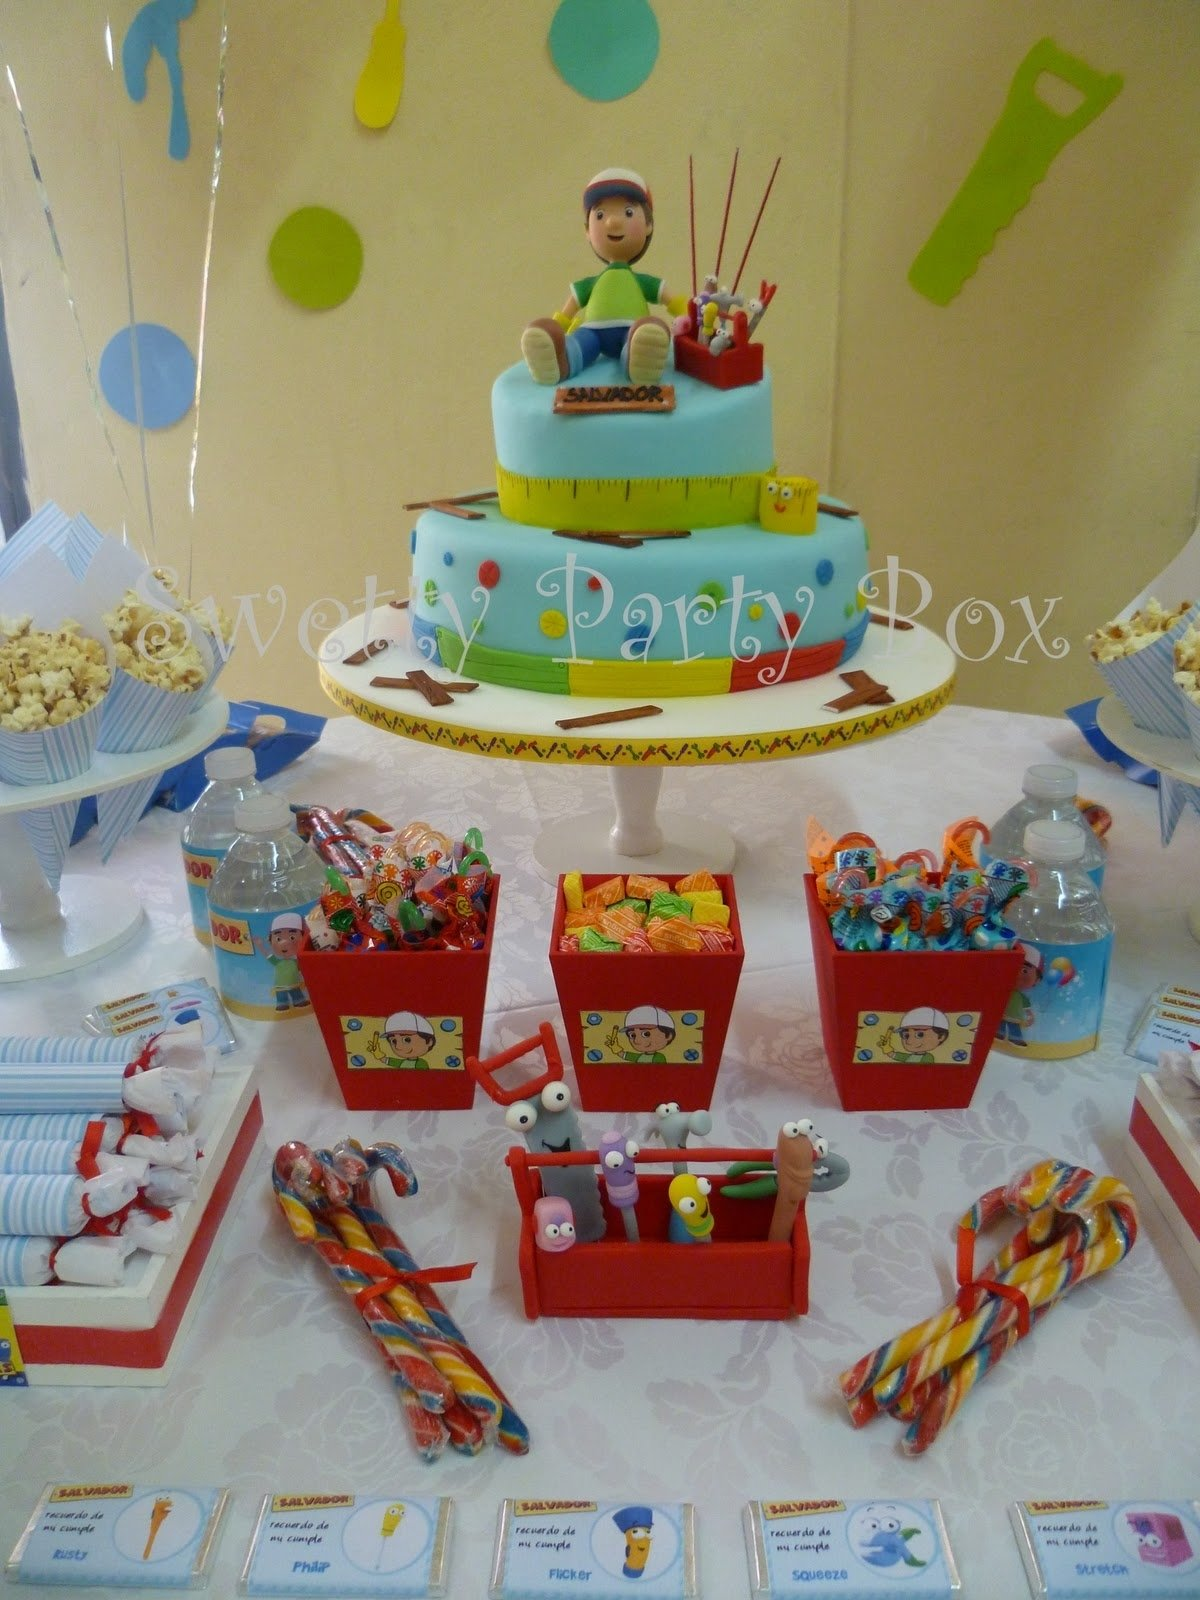 handy manny party, i like the red buckets for the candy. mr